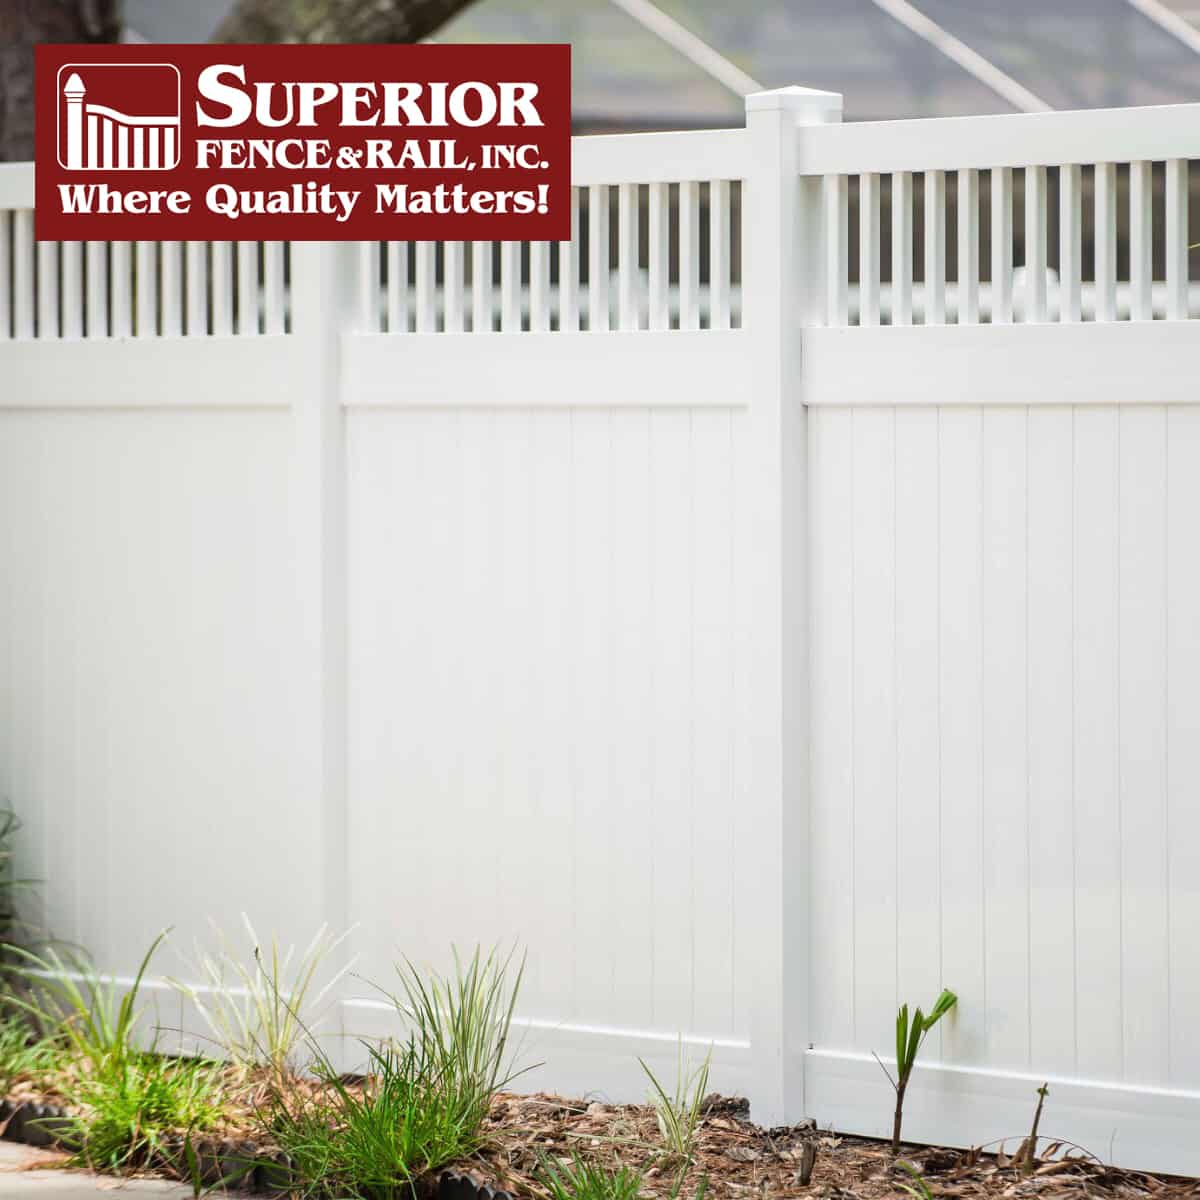 https://www.superiorfenceandrail.com/wp-content/uploads/2021/03/Wayland-fence-company-contractor.jpg